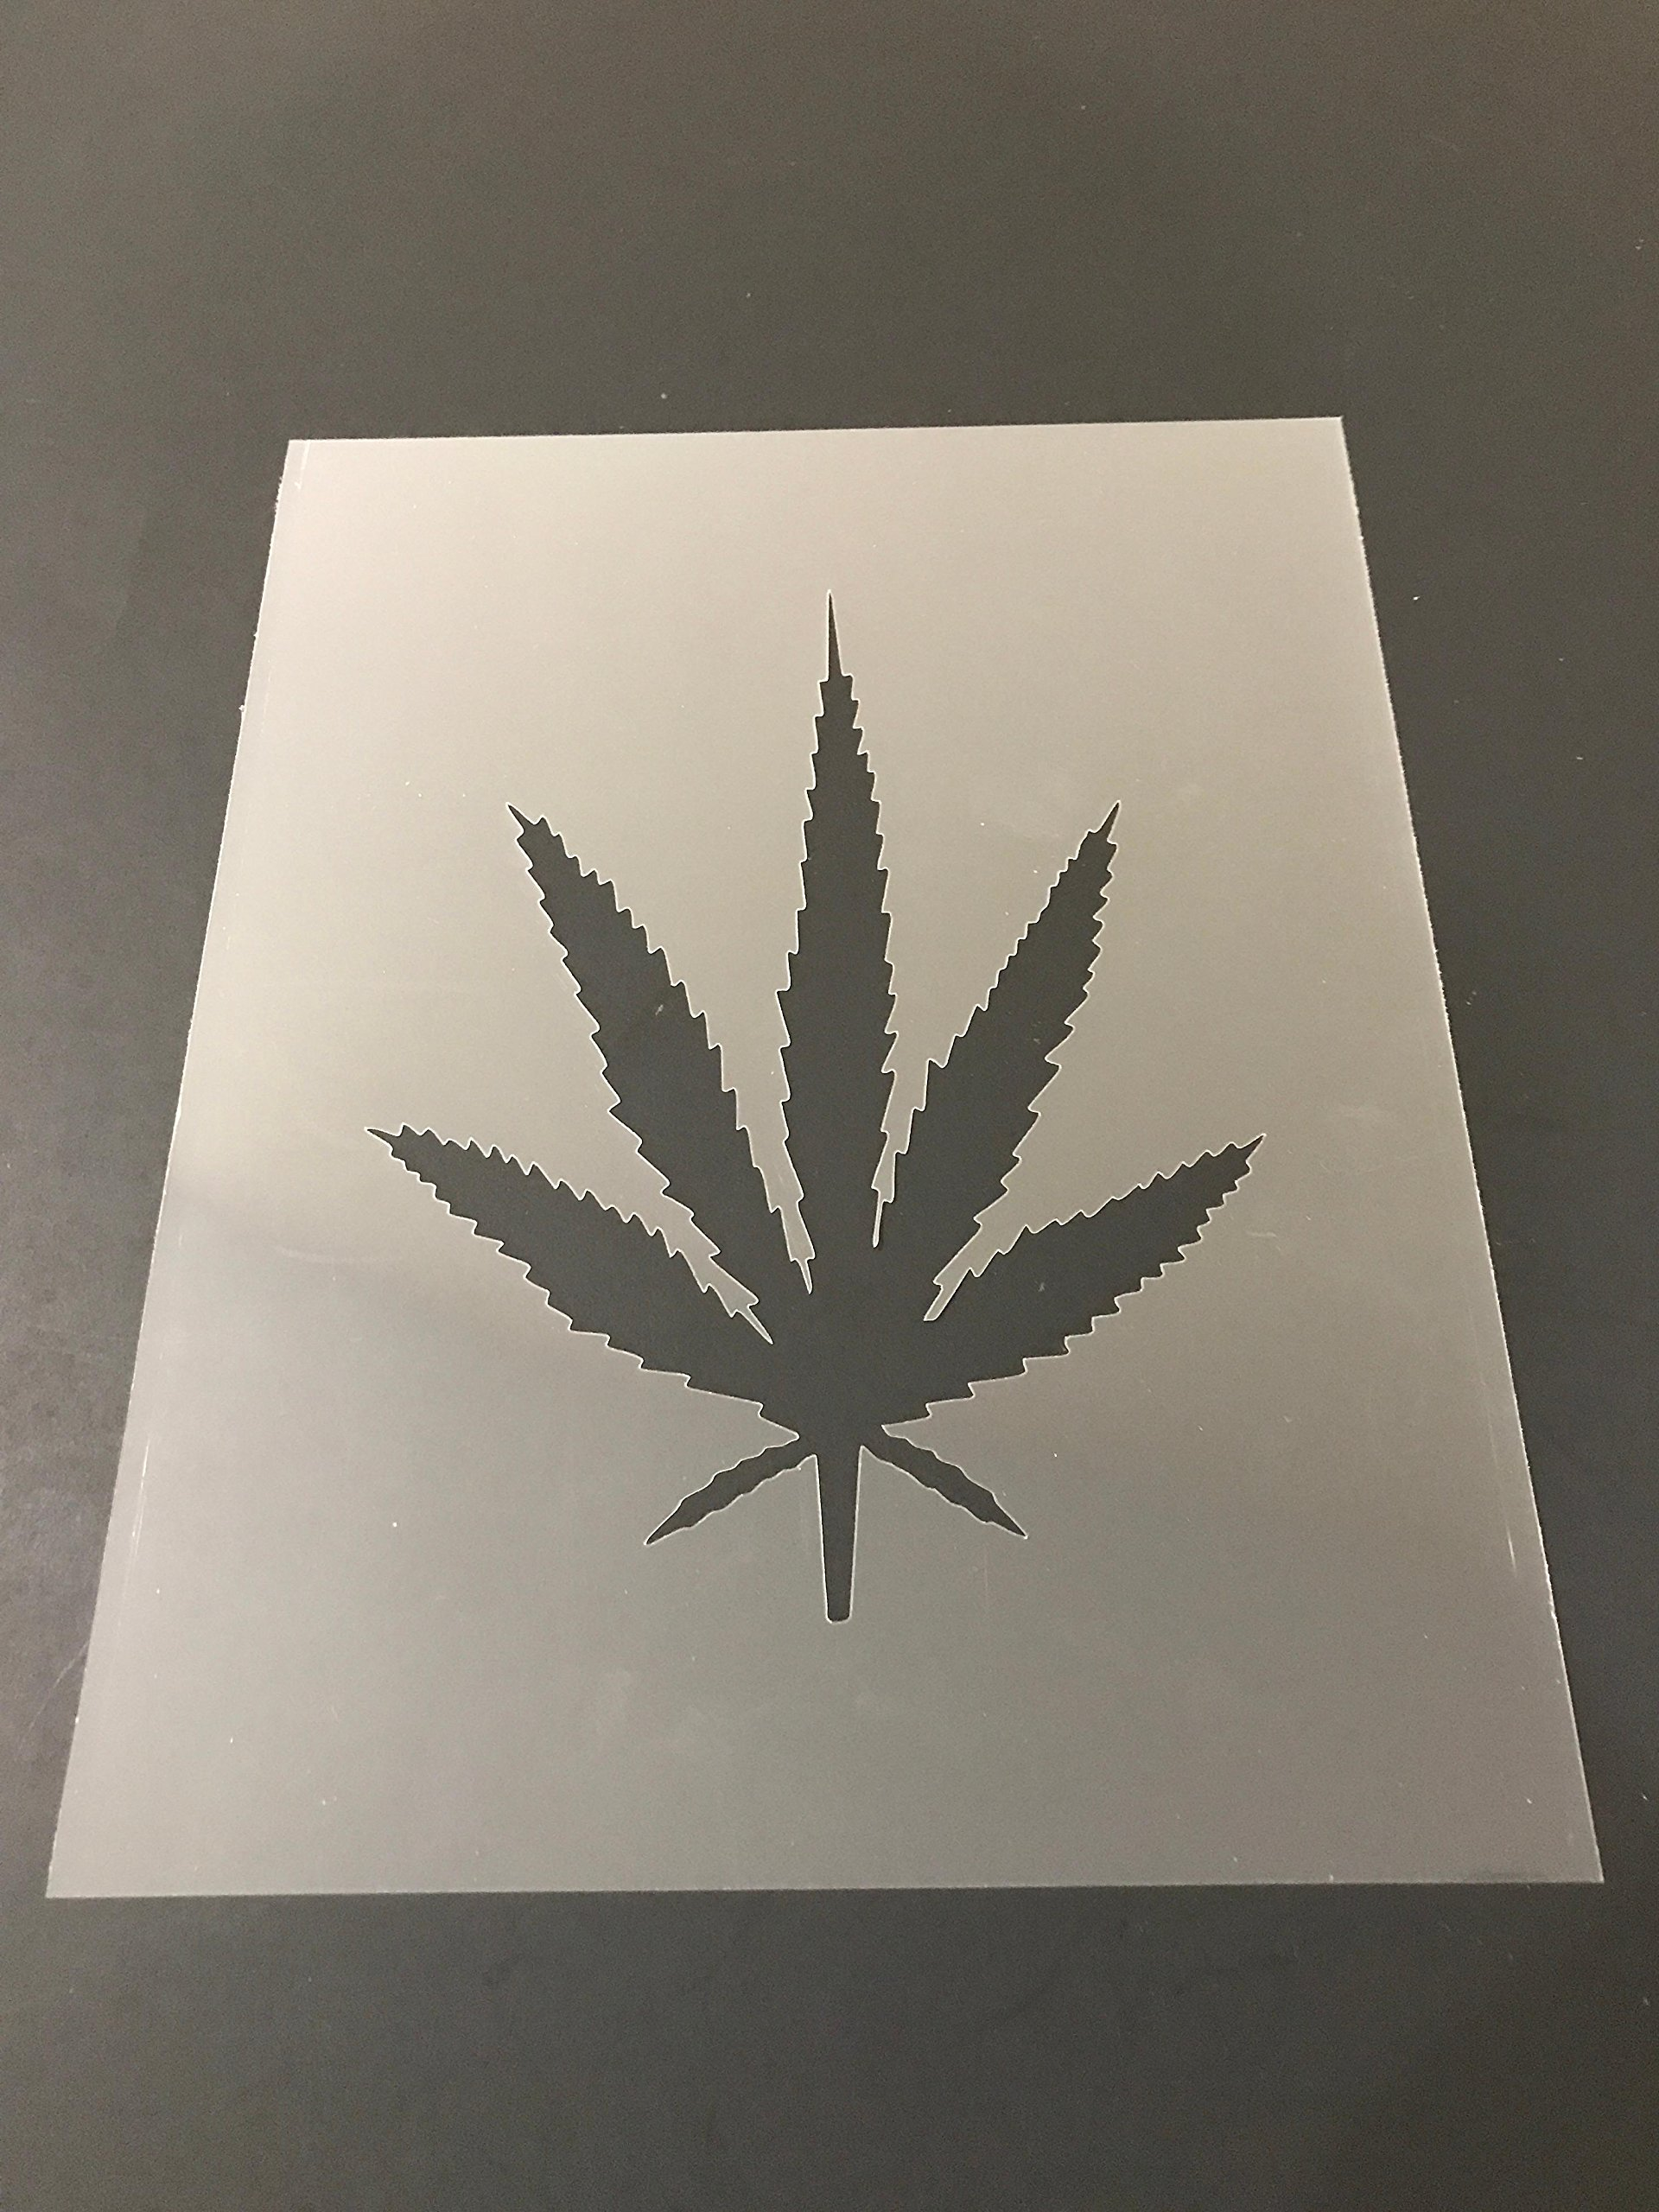 Pot leaf Marijuana Weed Cannabis Stencil #4 Reusable 10 mil Thick 7in x 9in sheet by Everyday Funny Finds